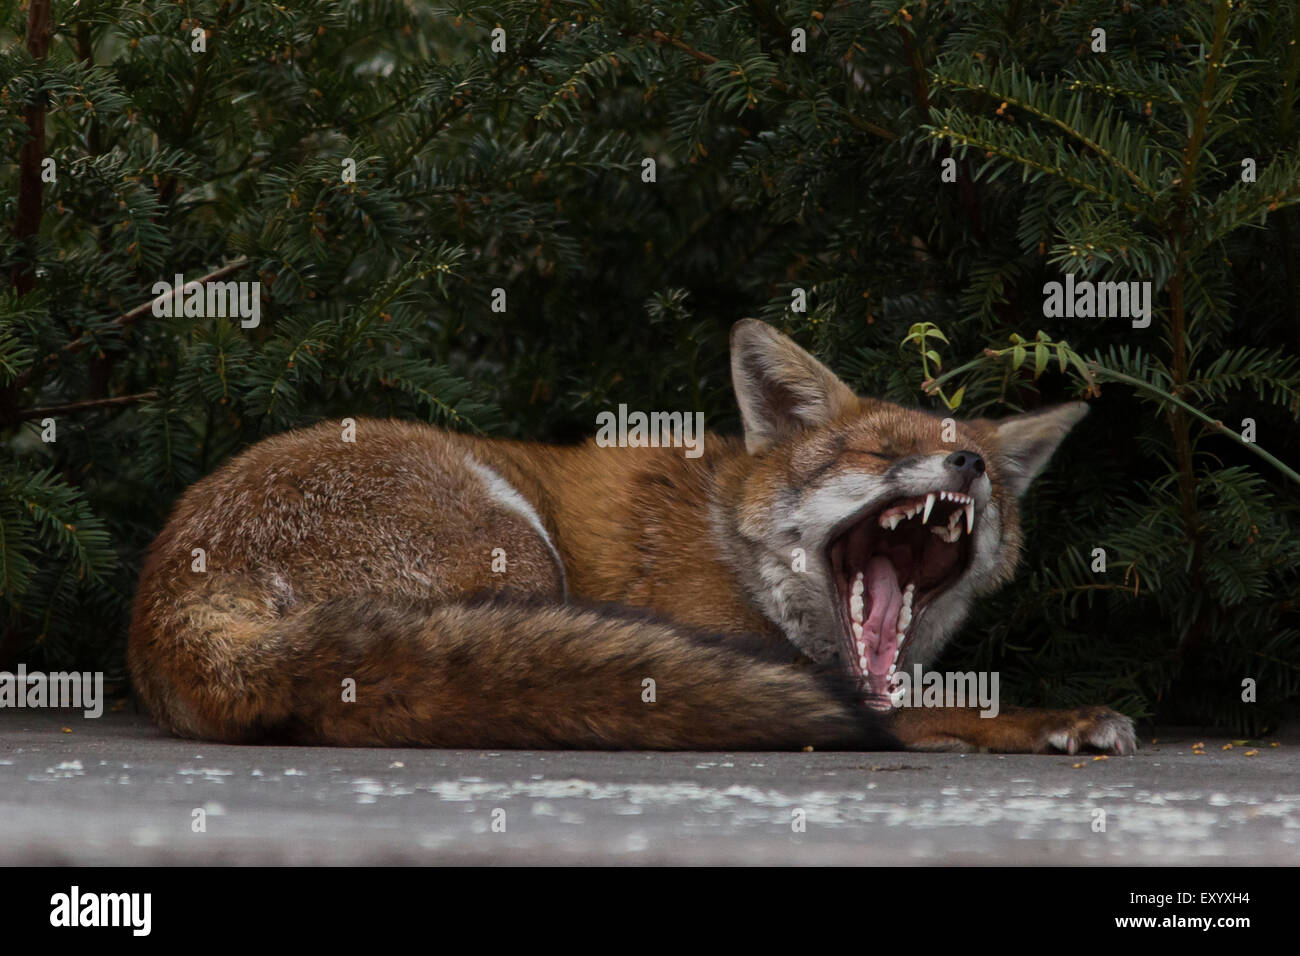 a city fox waking up on top of a garden shed stock photo 85436096